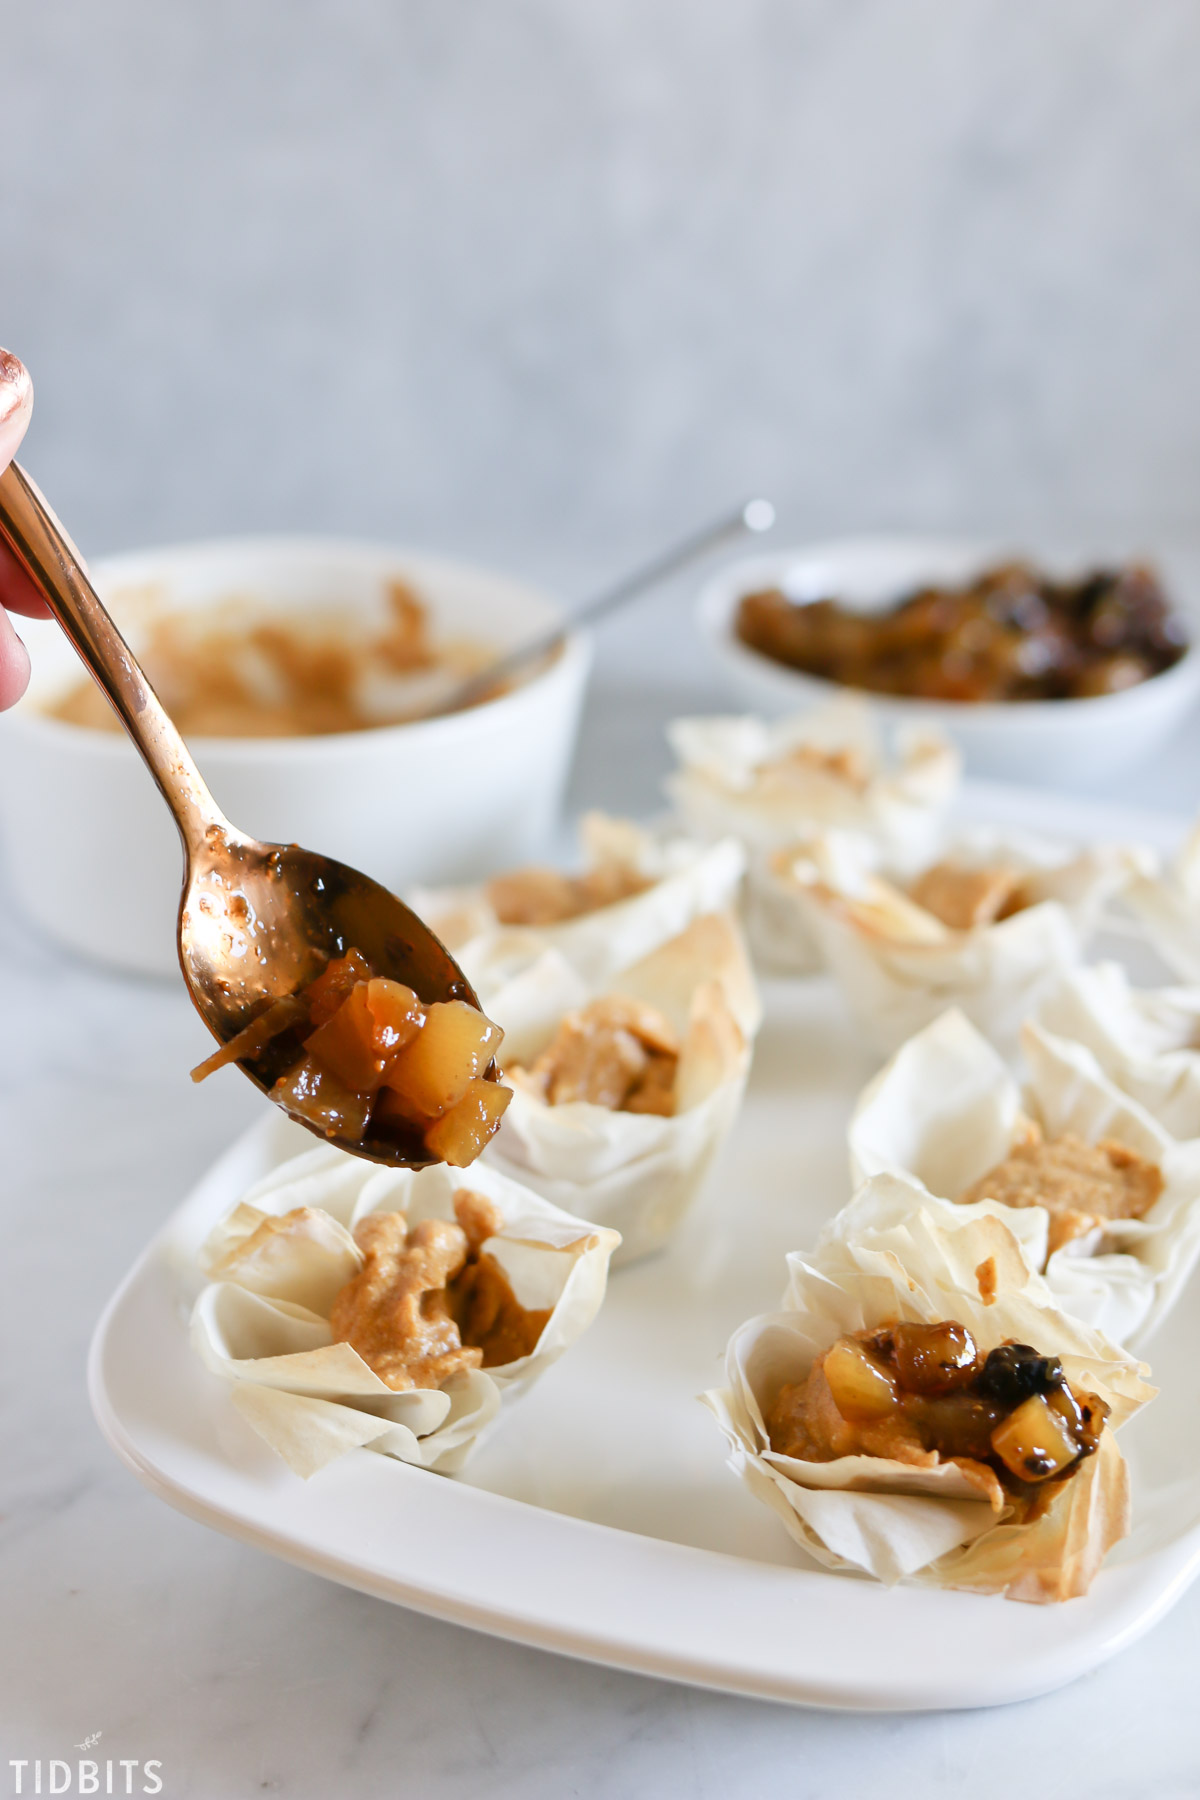 Phyllo cups with pumpkin filling and topped with cooked apples.